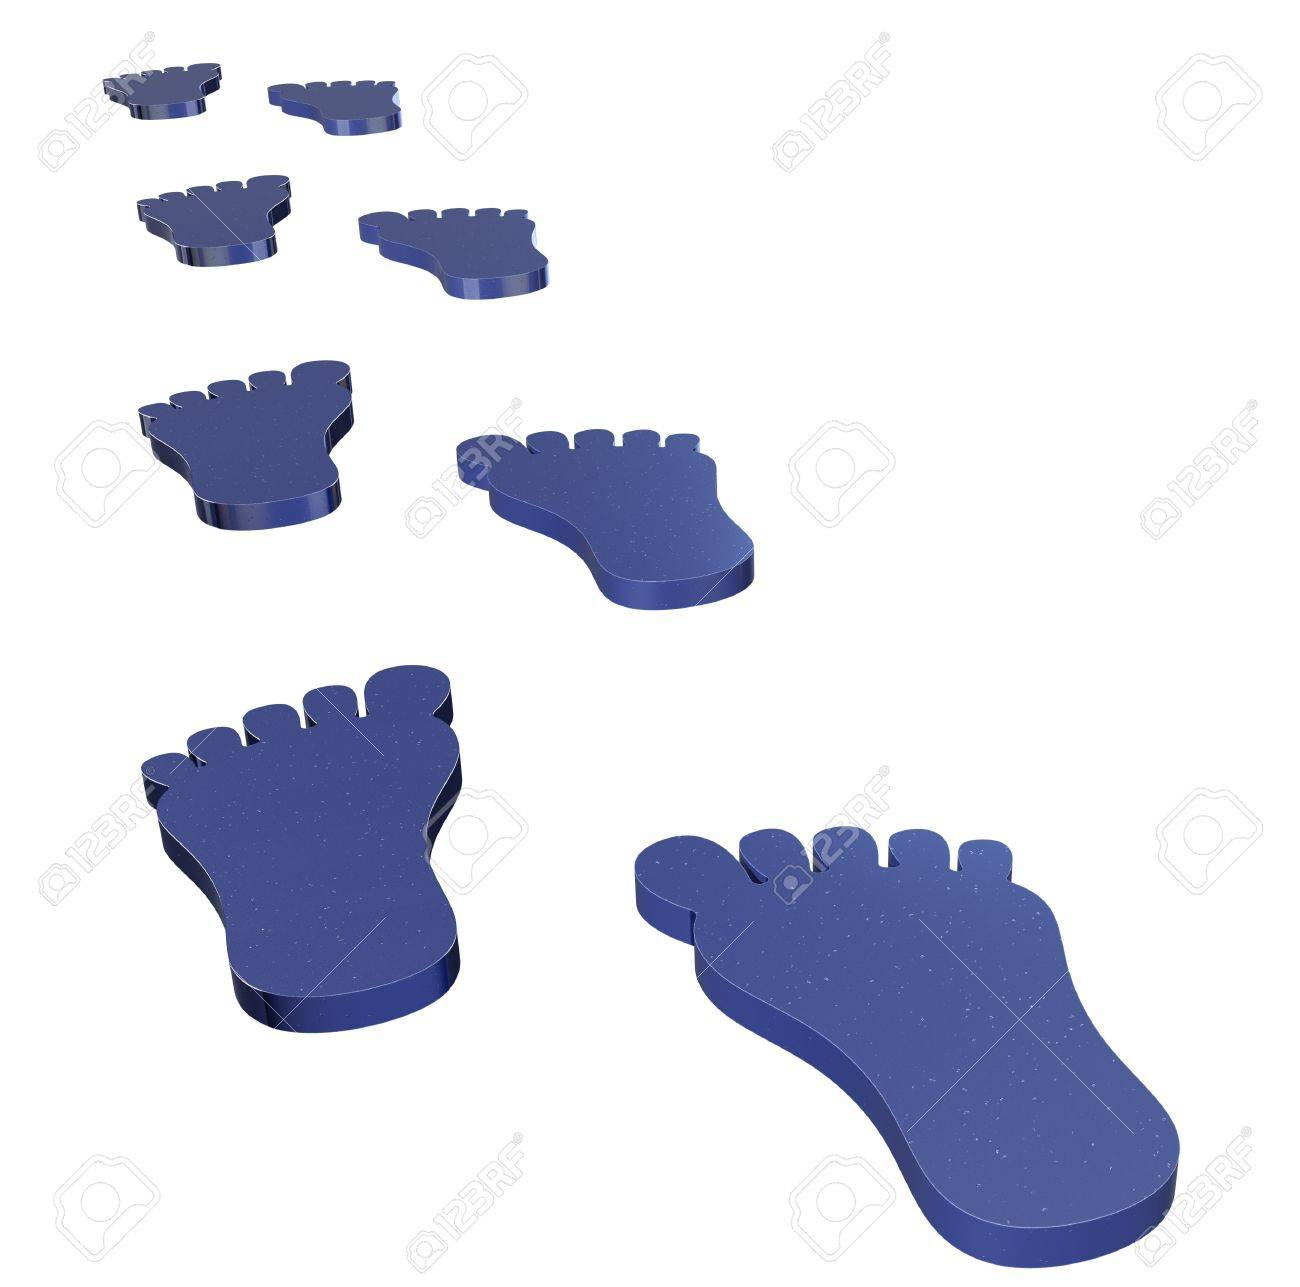 Toon footsteps isolated on white 3d model - 18269696